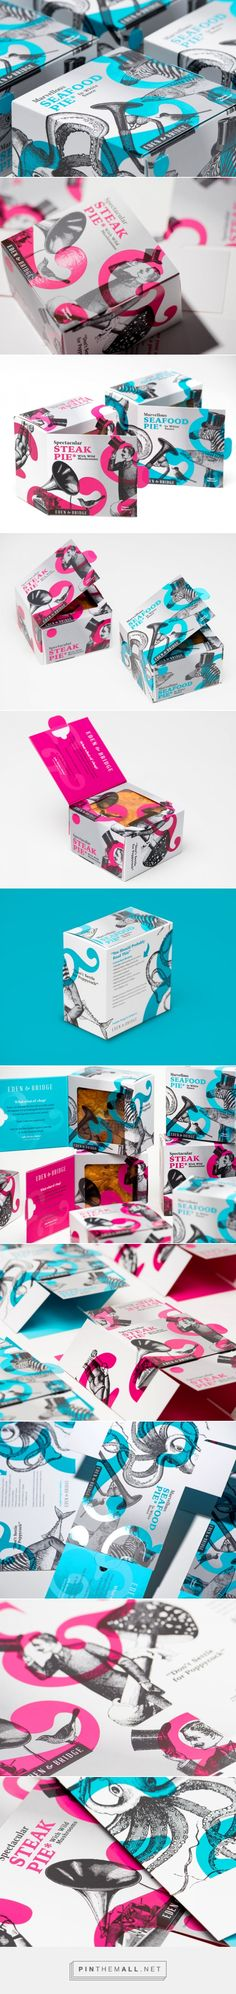 Colorful Packaging for Savory Eden & Bridge Premium Pies / Designed by Fable&Co.